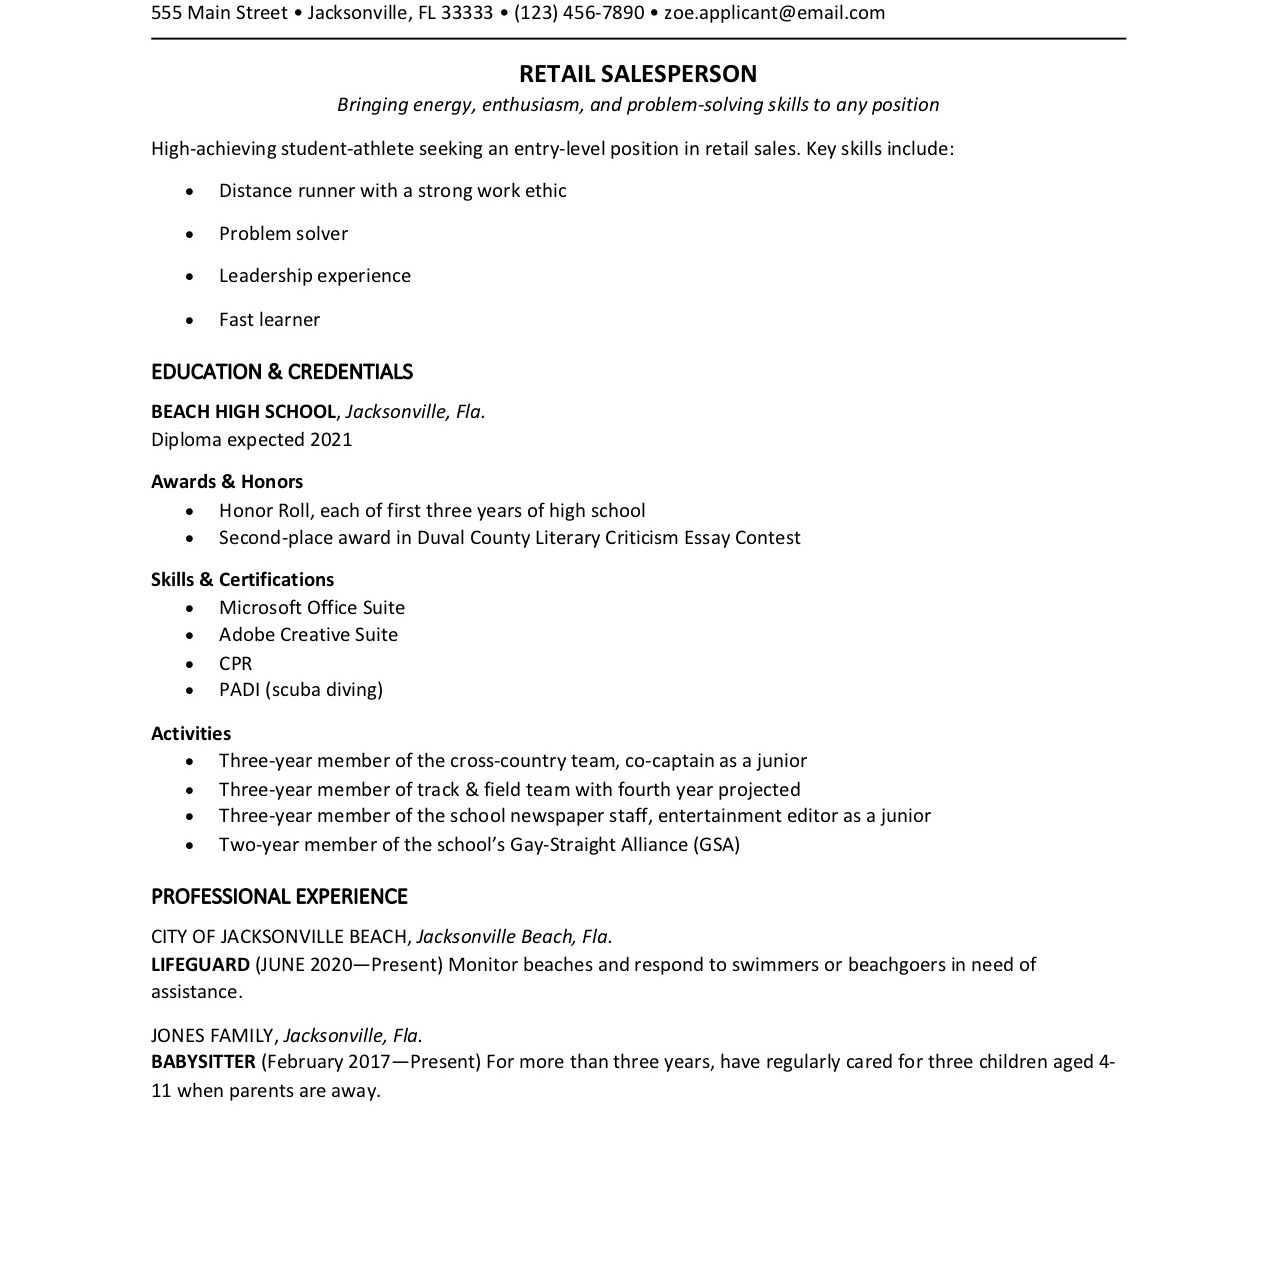 high school student resume template retail for sample with project details shadowing Resume Retail Resume For High School Student